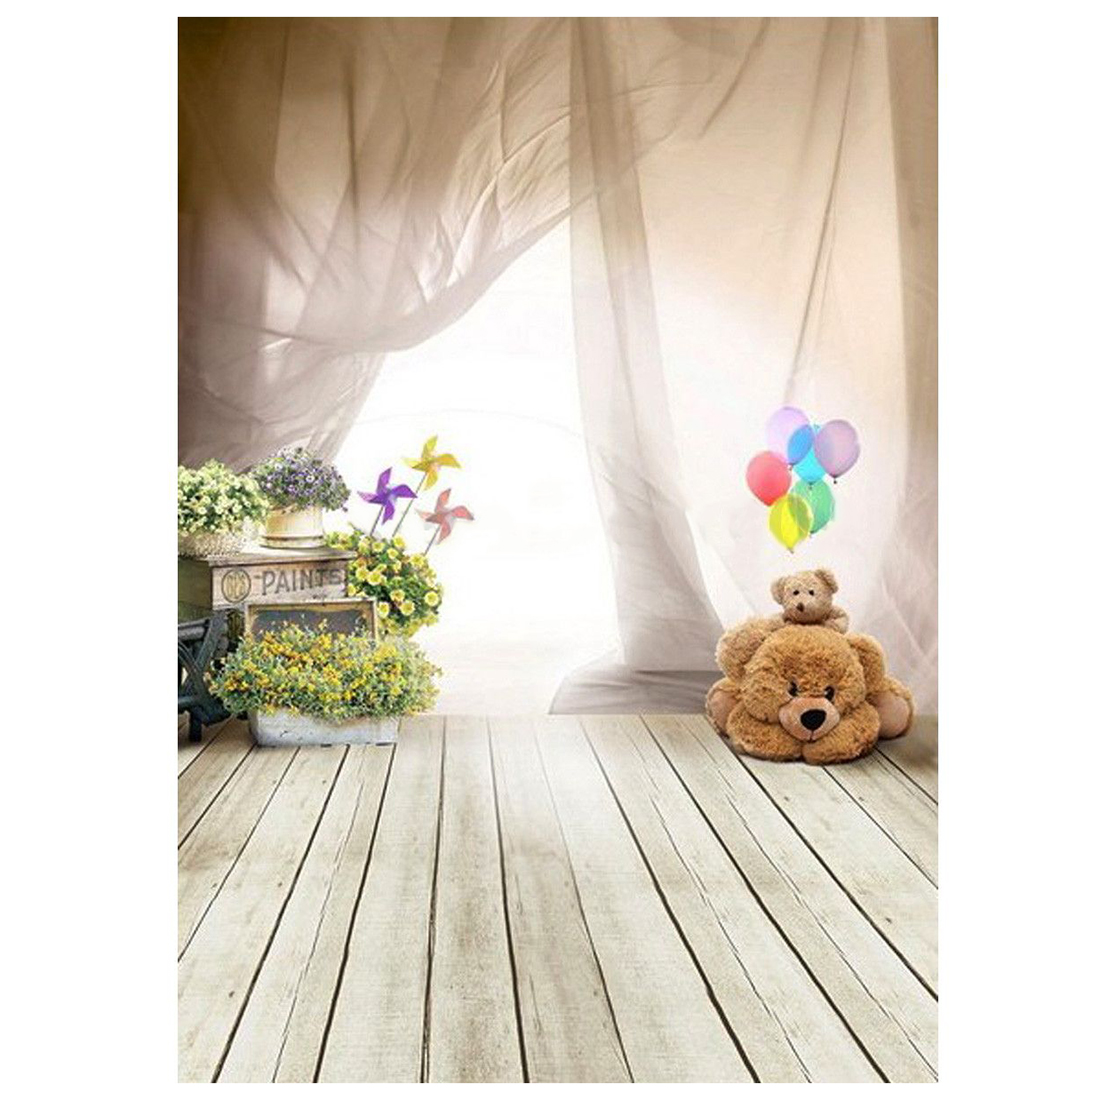 CES 1m x 1.5m Lovely Bear Floor Balloon Studio Backdrops Children Photography Background quality broken wind chinese dragon badminton rackets carbon fiber professional offensive racquets single racket q1013cmk